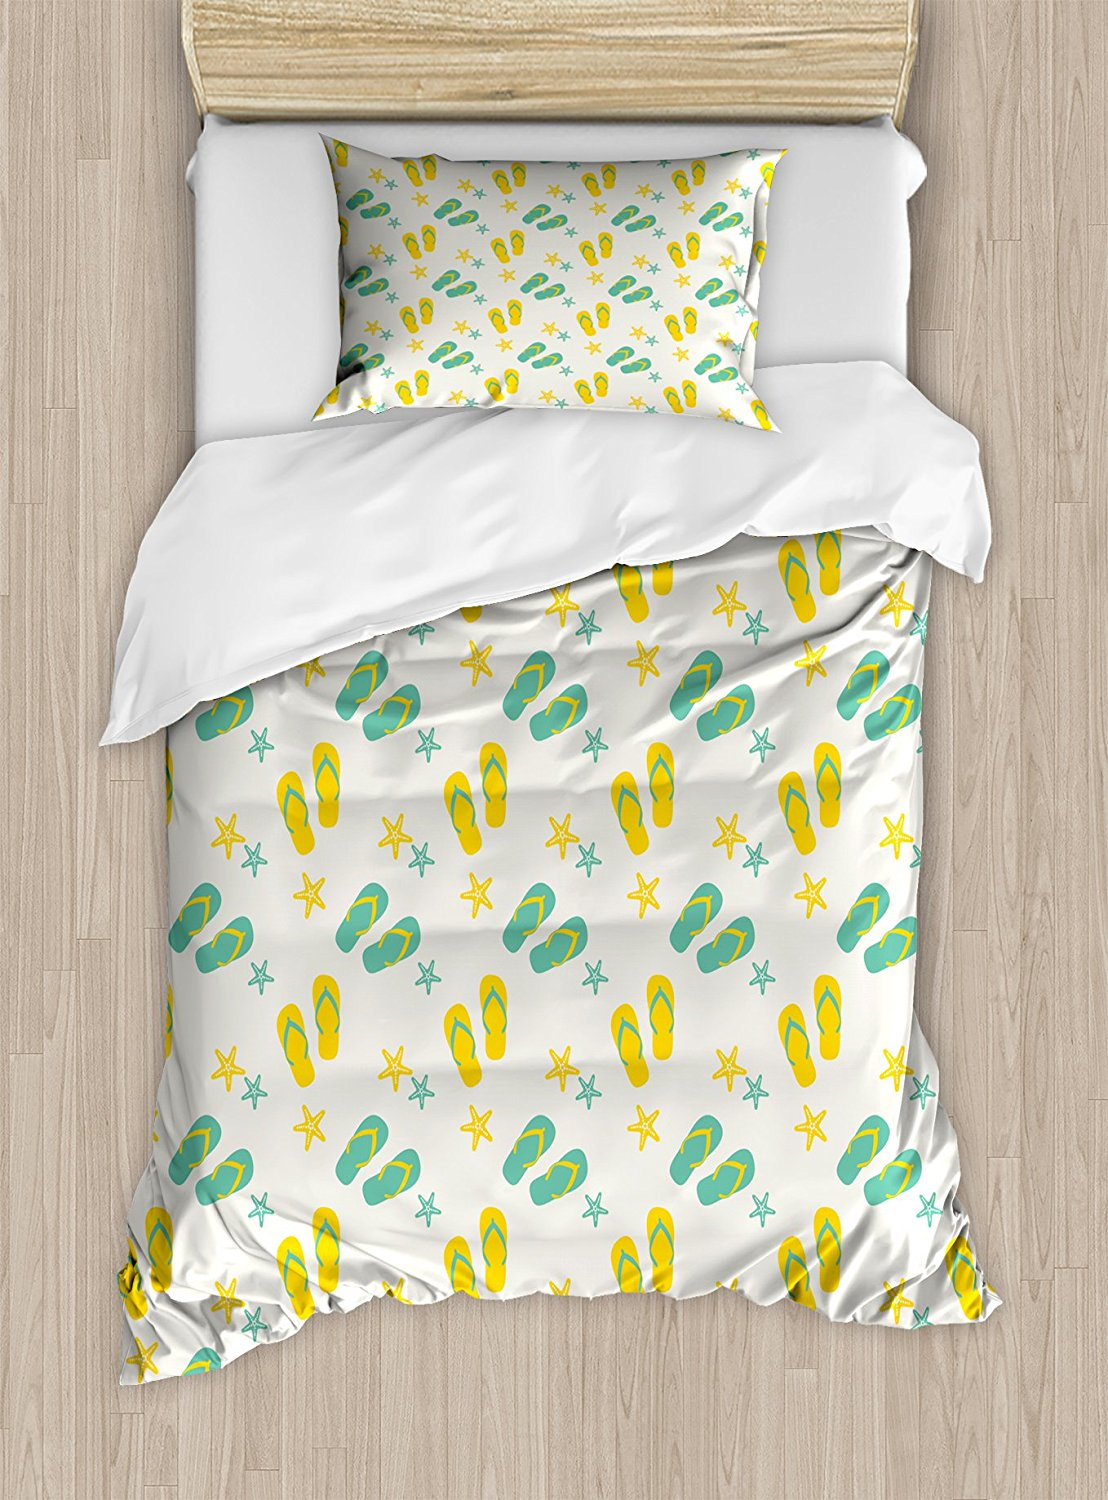 Geometric Duvet Cover Set Flip Flops and Starfishes Beach Elements Exotic Poolside Theme Pattern, 4 Piece Bedding Set